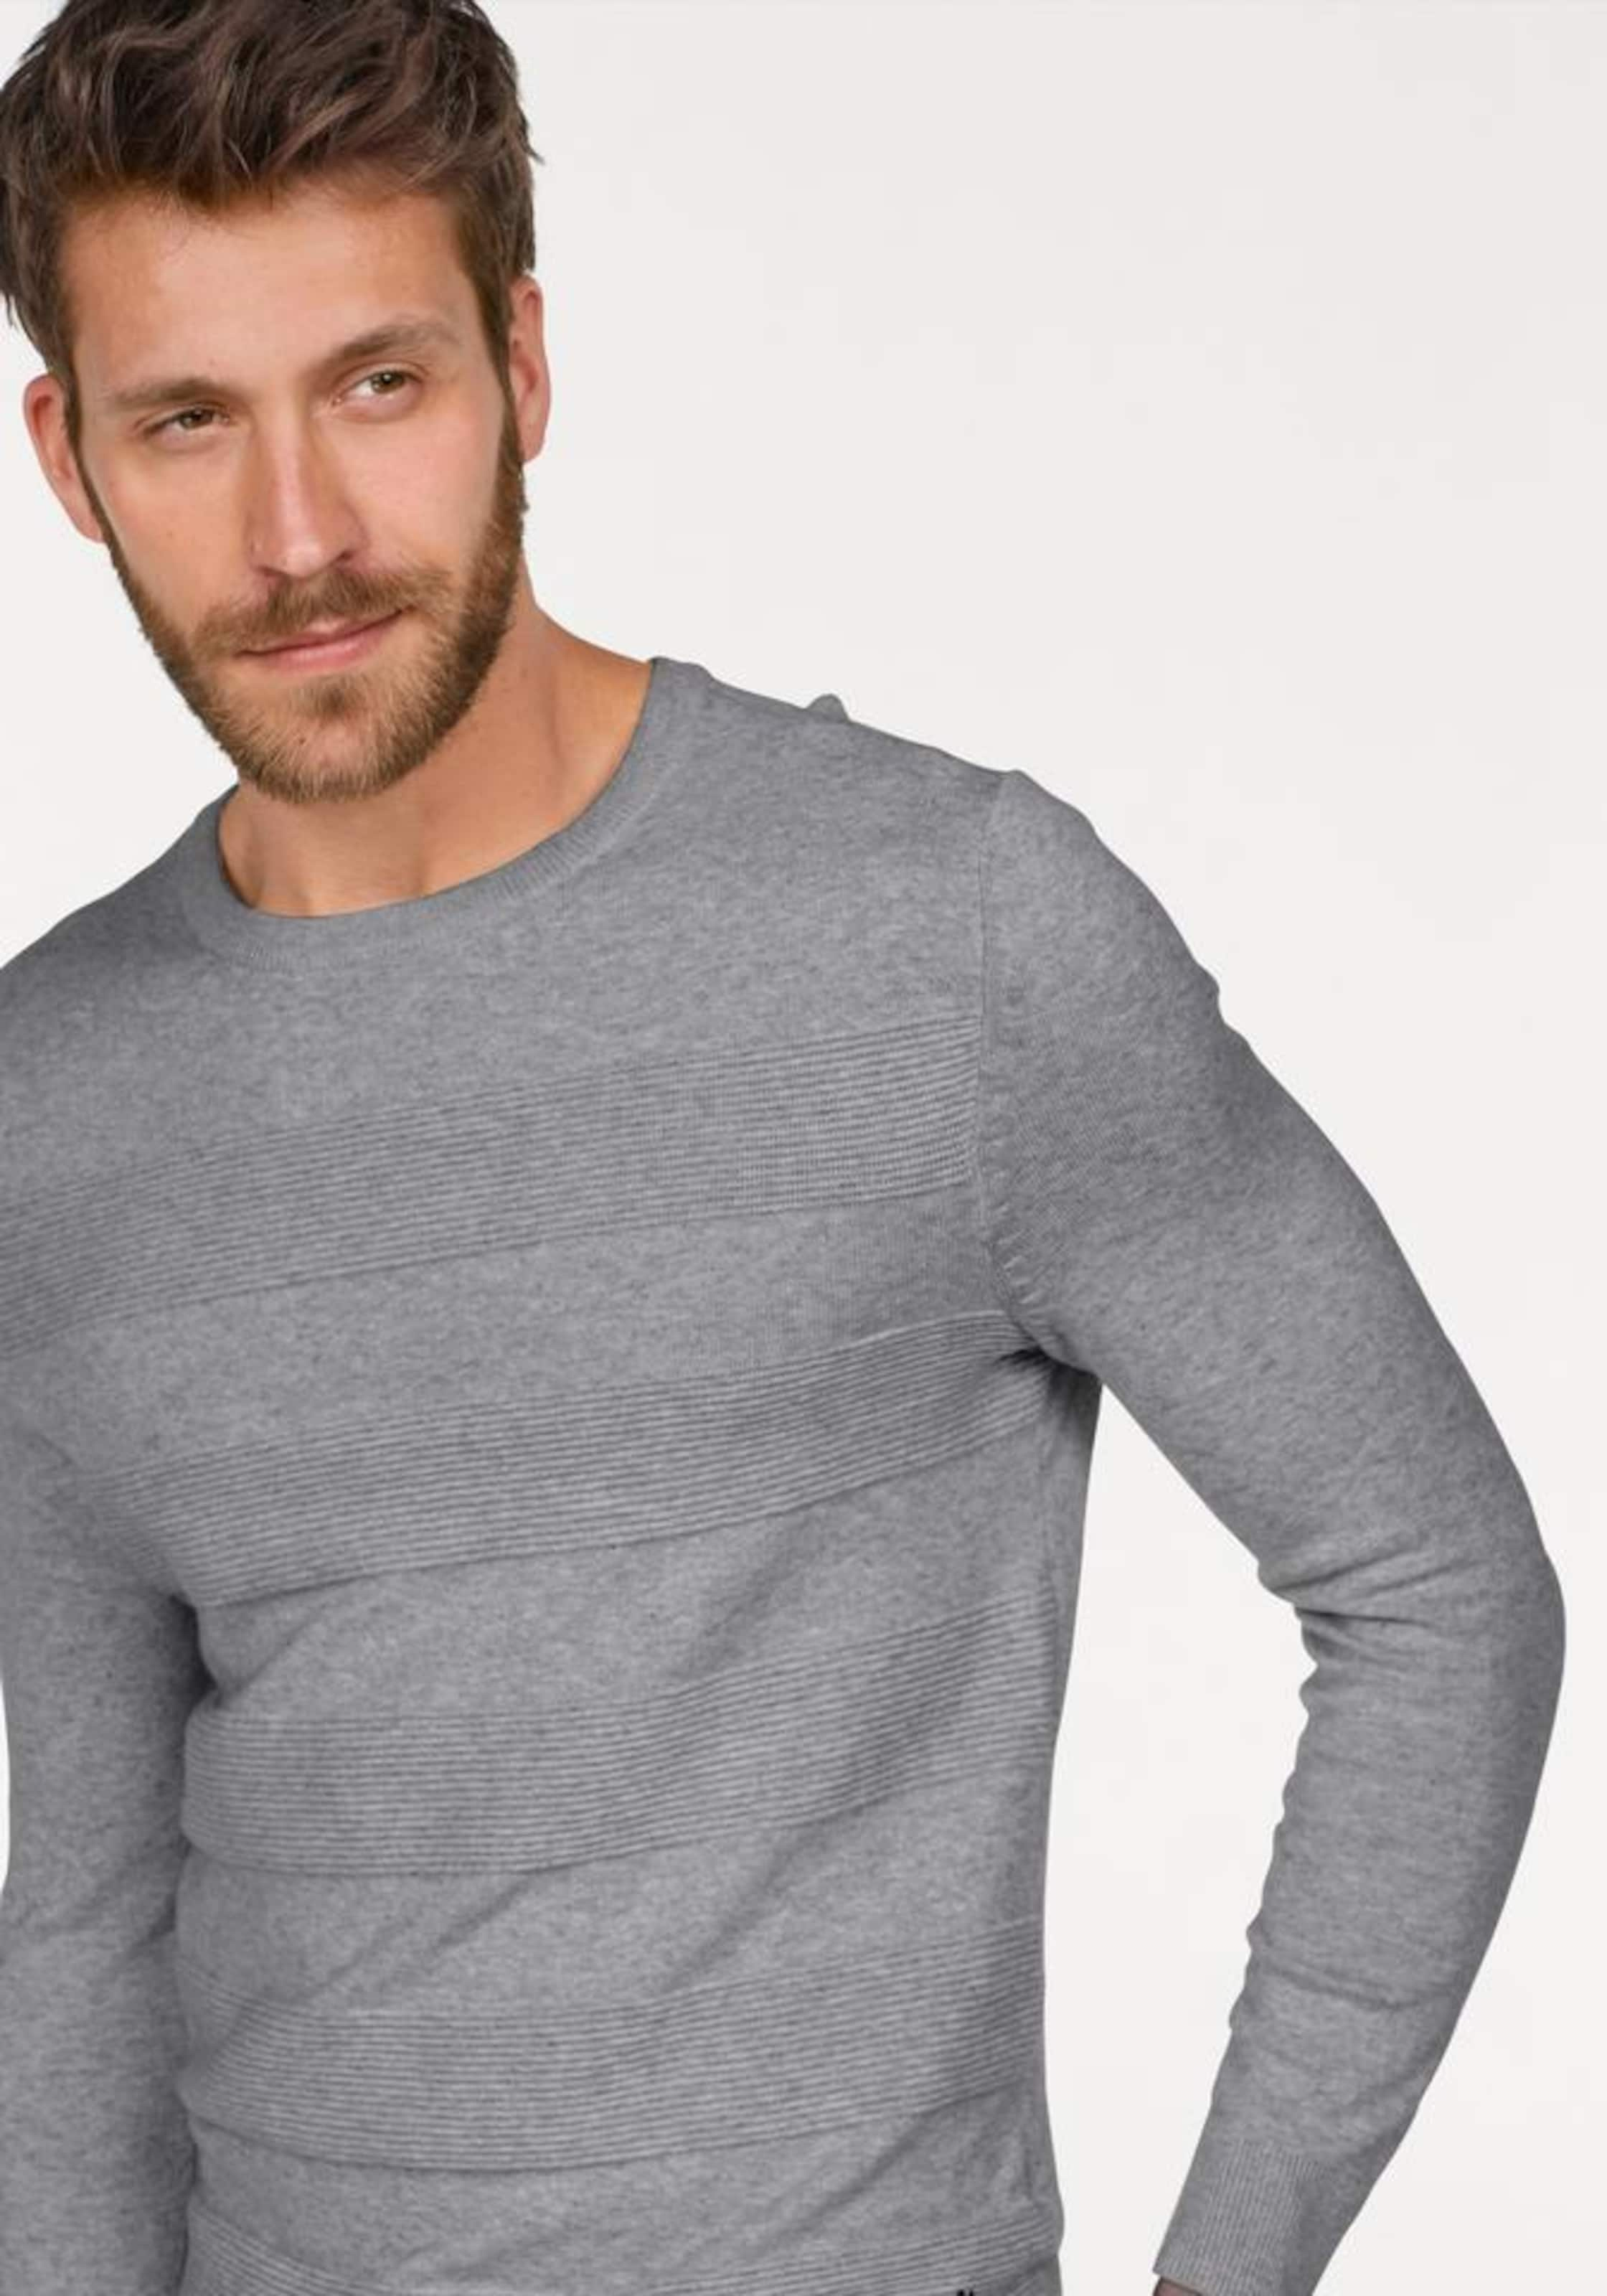 Banani Pullover Graumeliert Bruno In Pullover Bruno Graumeliert Banani In u1JTK3Fcl